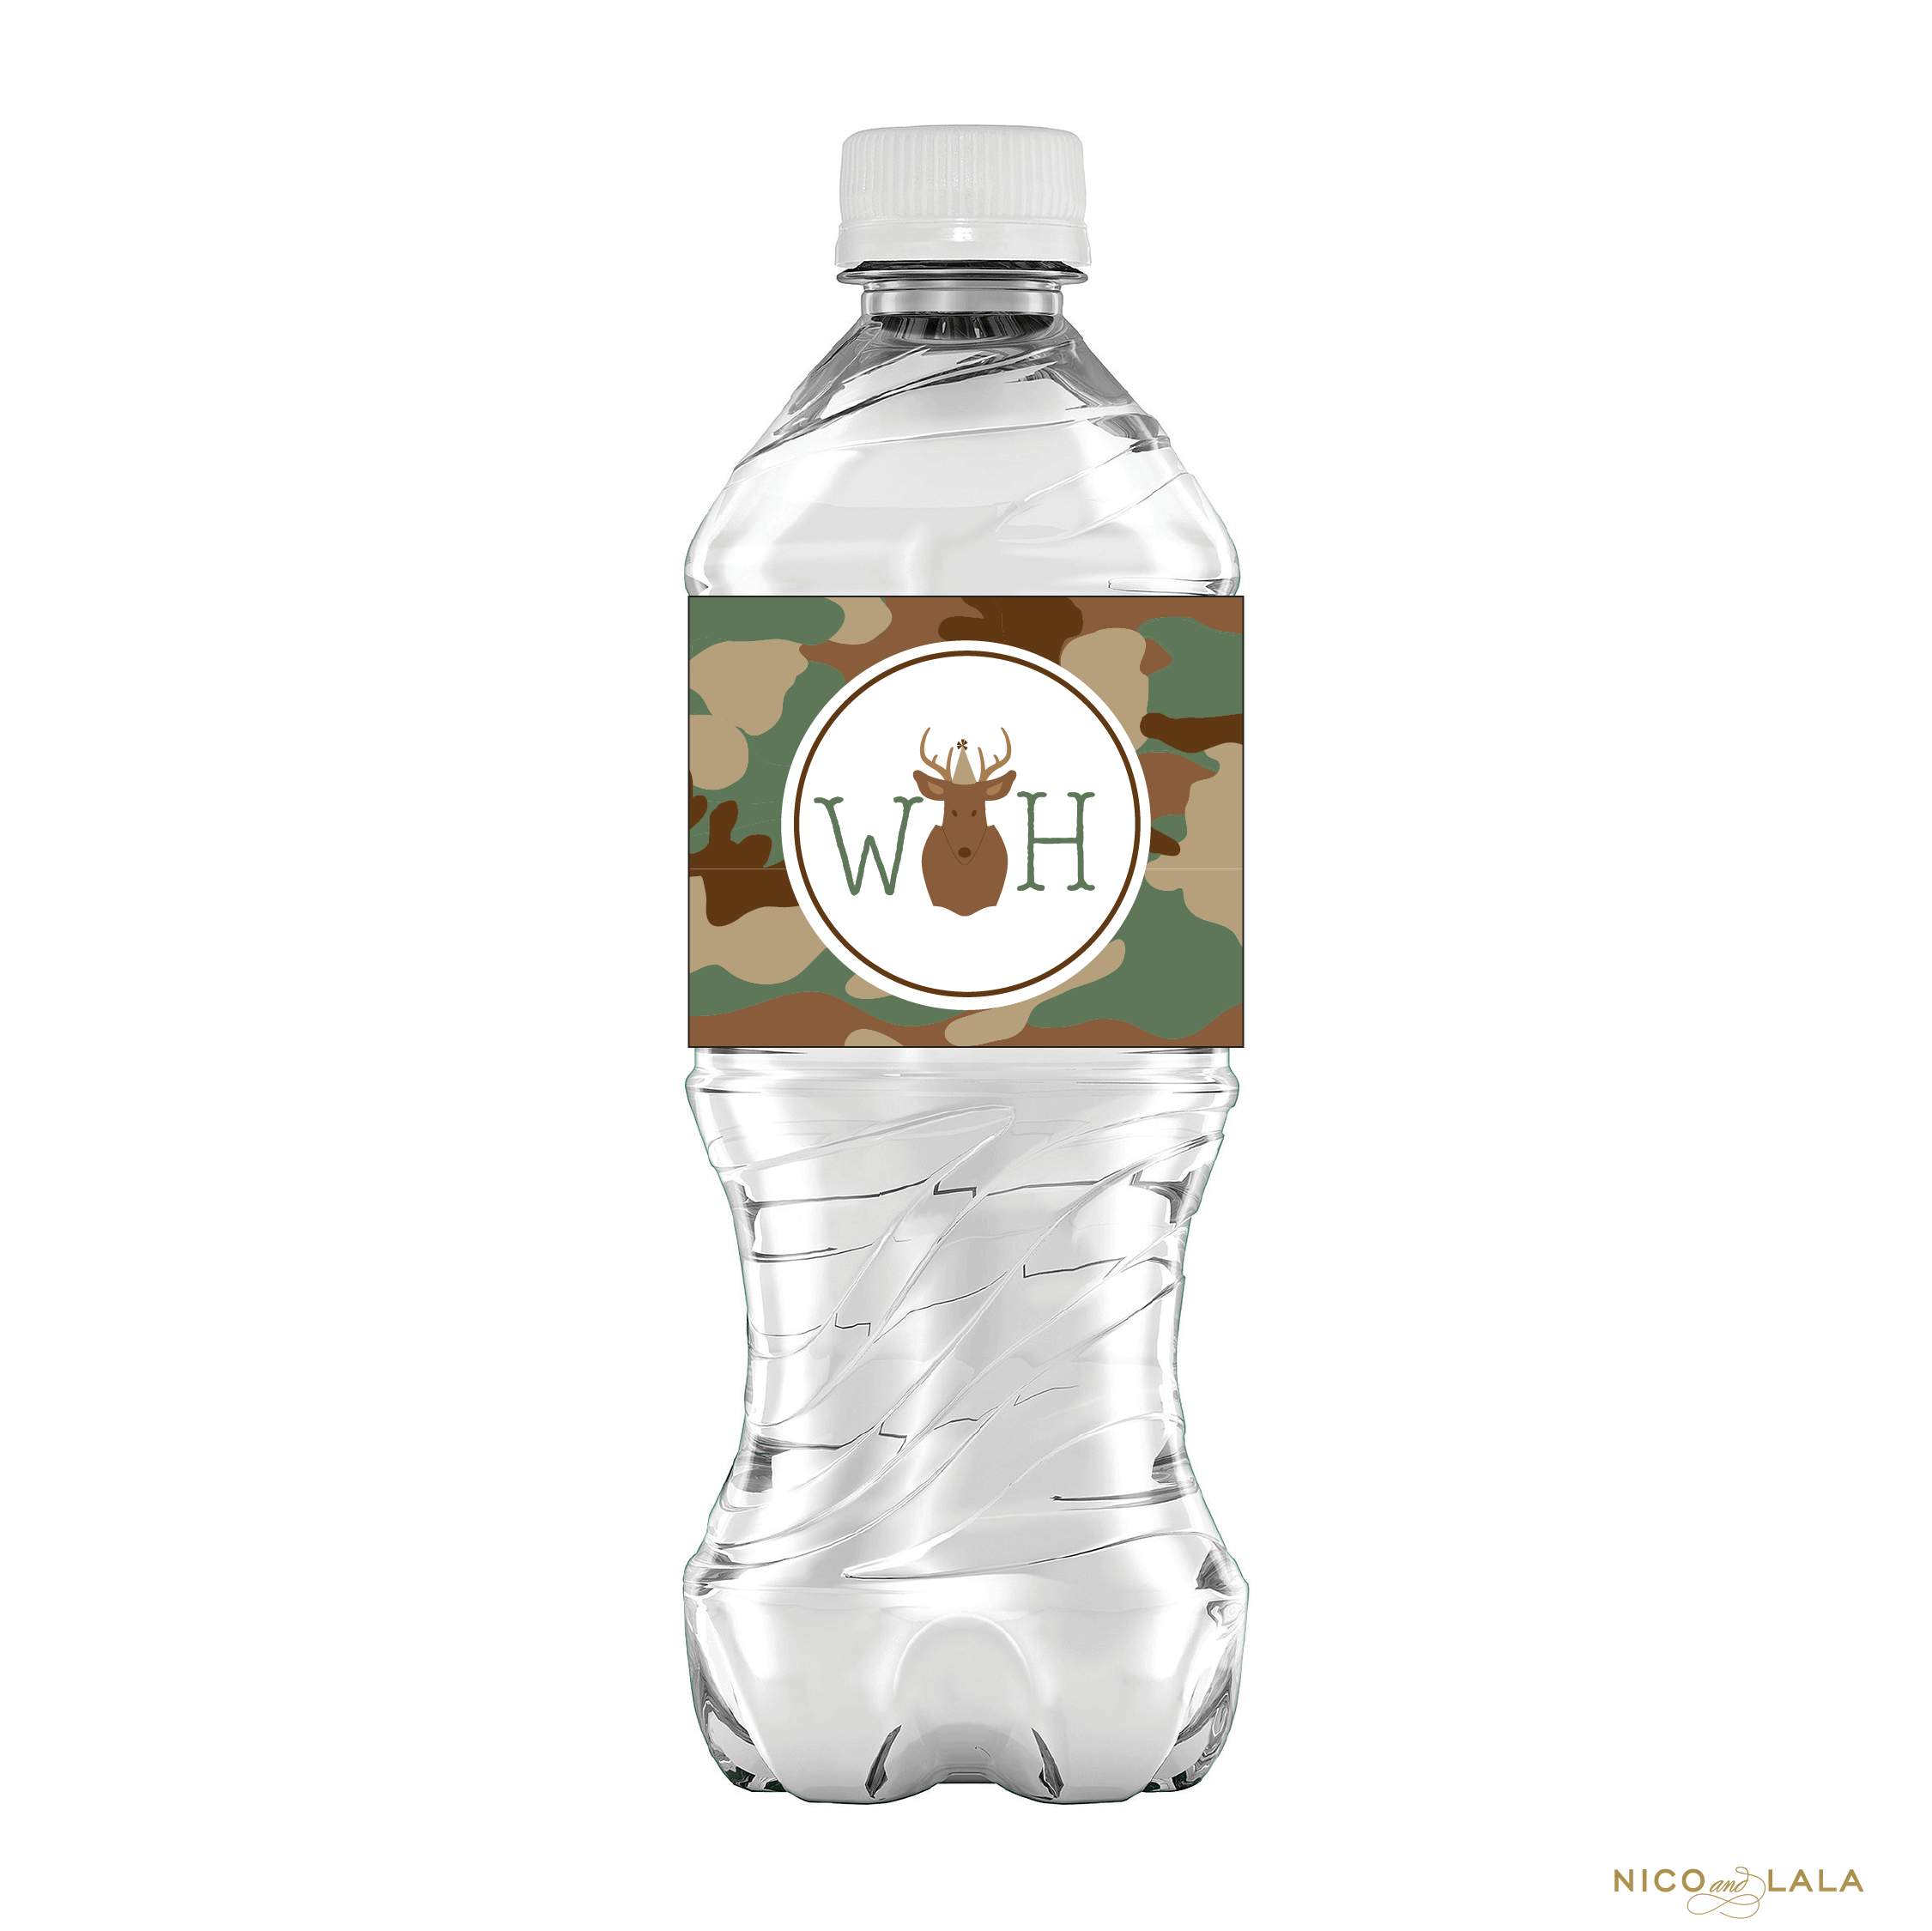 Camouflage water bottle label